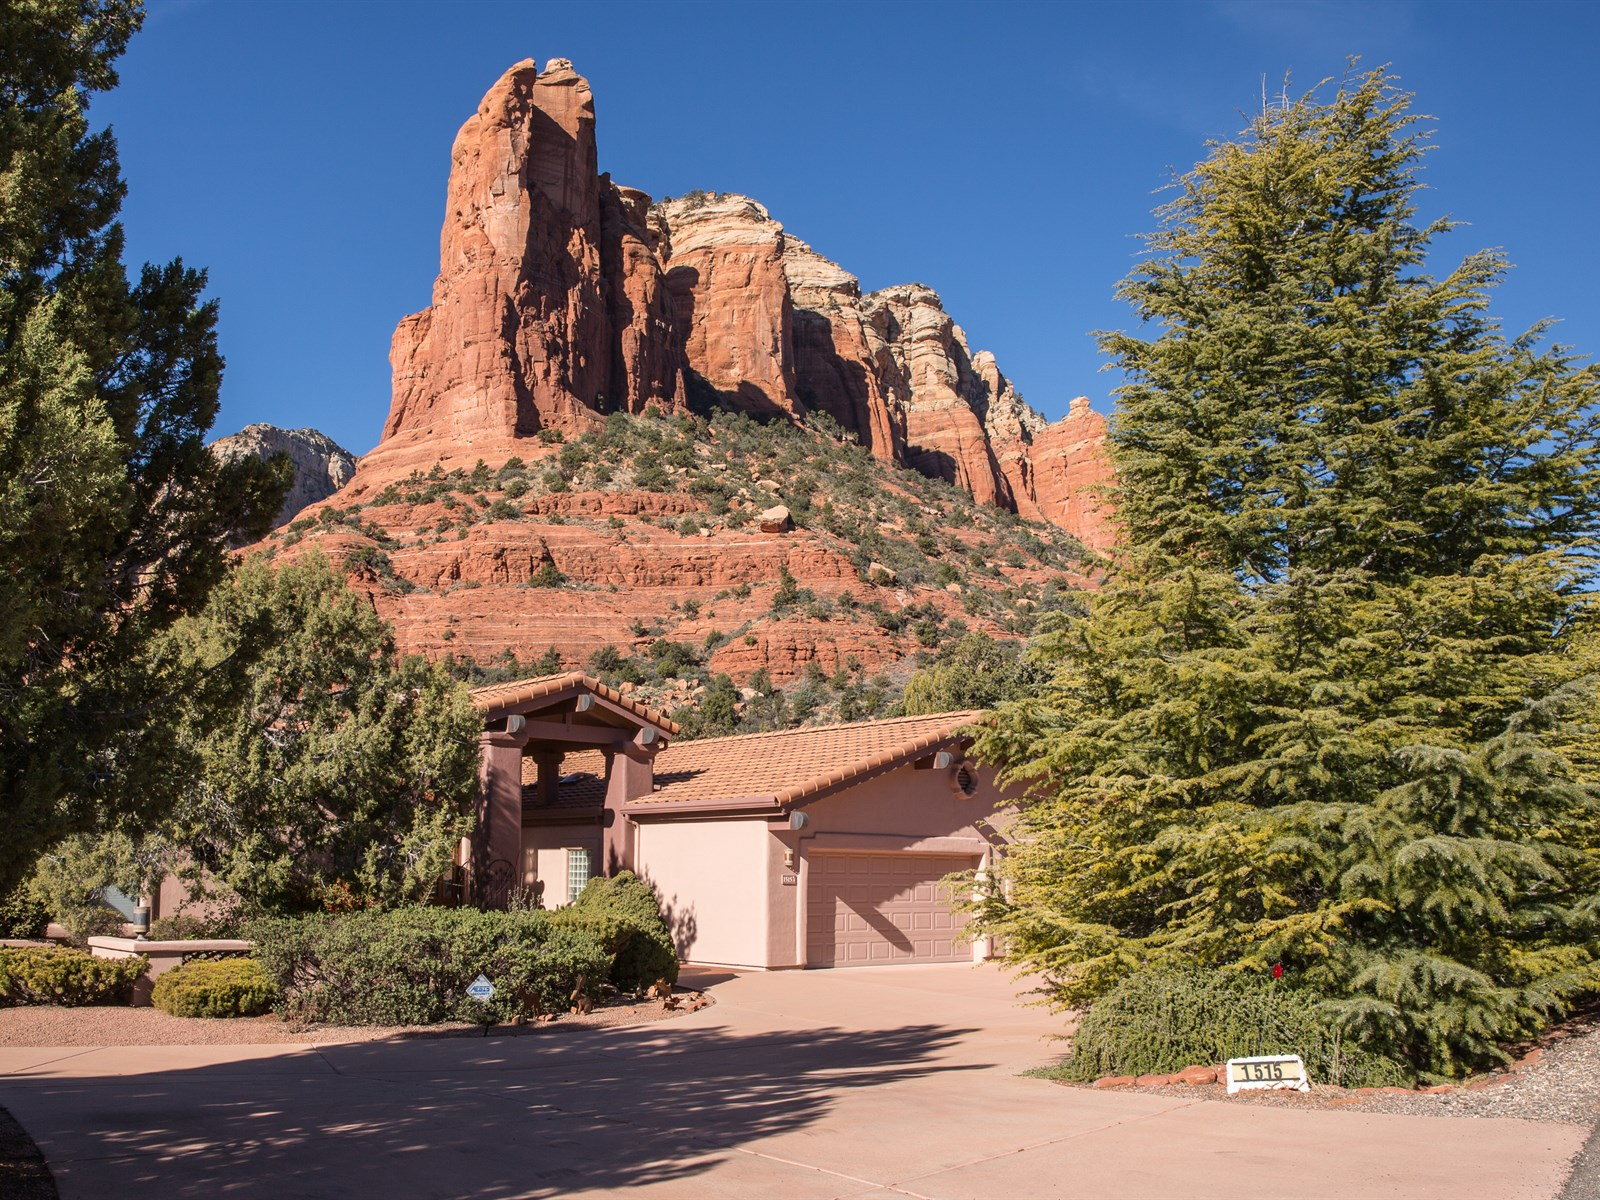 Single Family Home for Sale at Spacious Spanish Style Home 1515 Soldiers Pass Rd Sedona, Arizona, 86336 United States